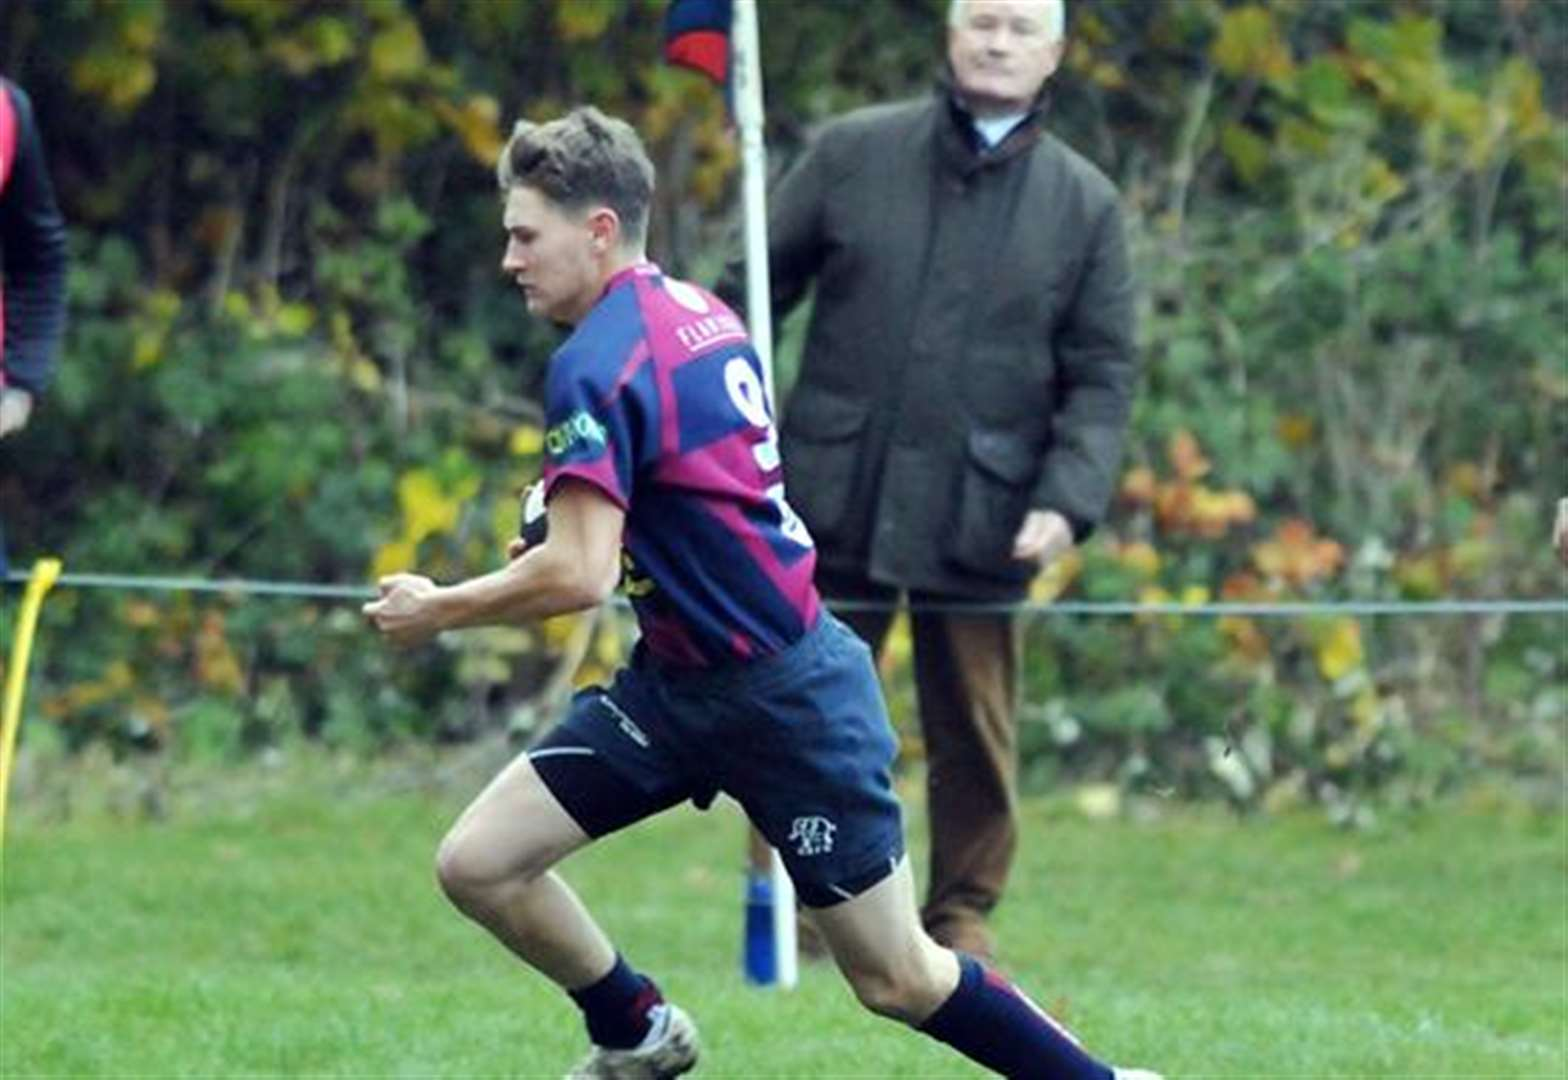 RUGBY: Spalding ready for journey into unknown against 'fairly solid' Tupton